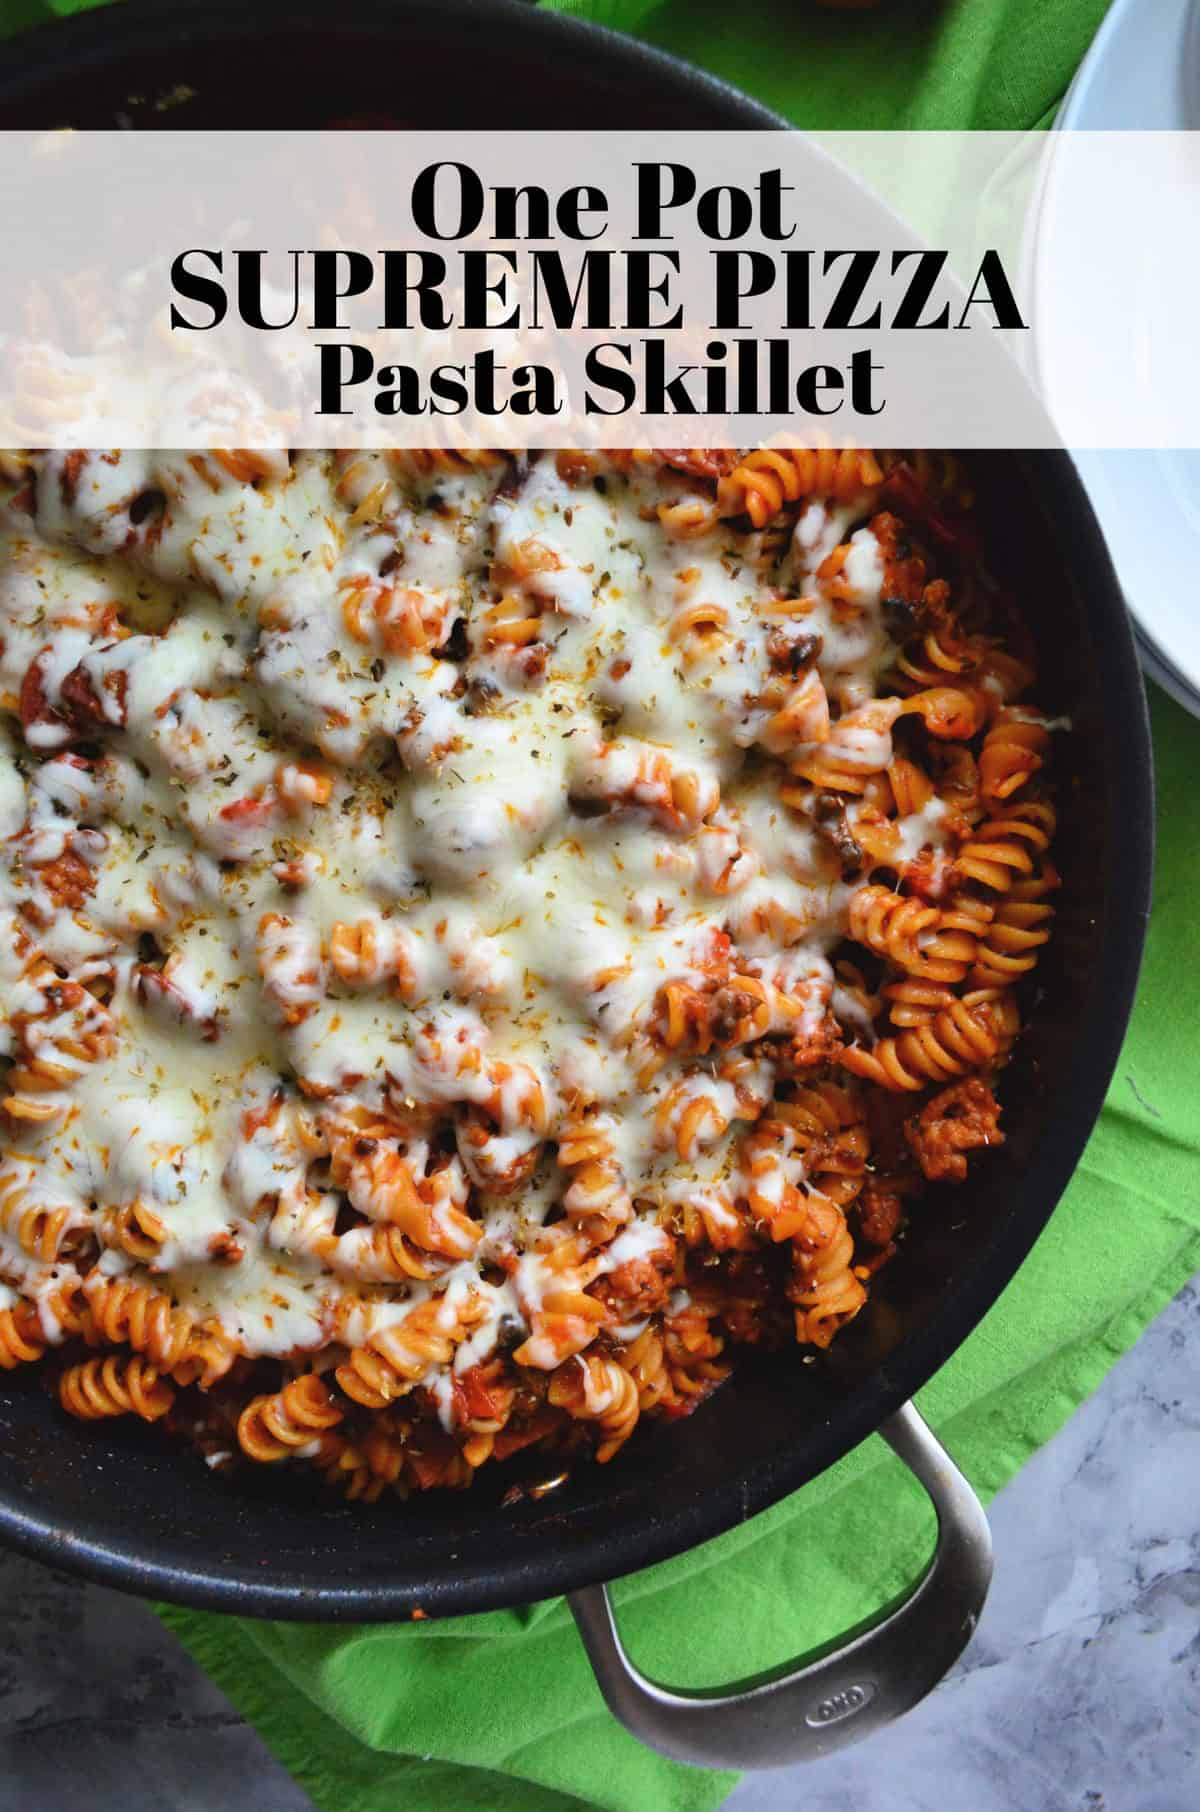 top view of skillet with rotini in red sauce topped with herbs and melted white cheese with title text.